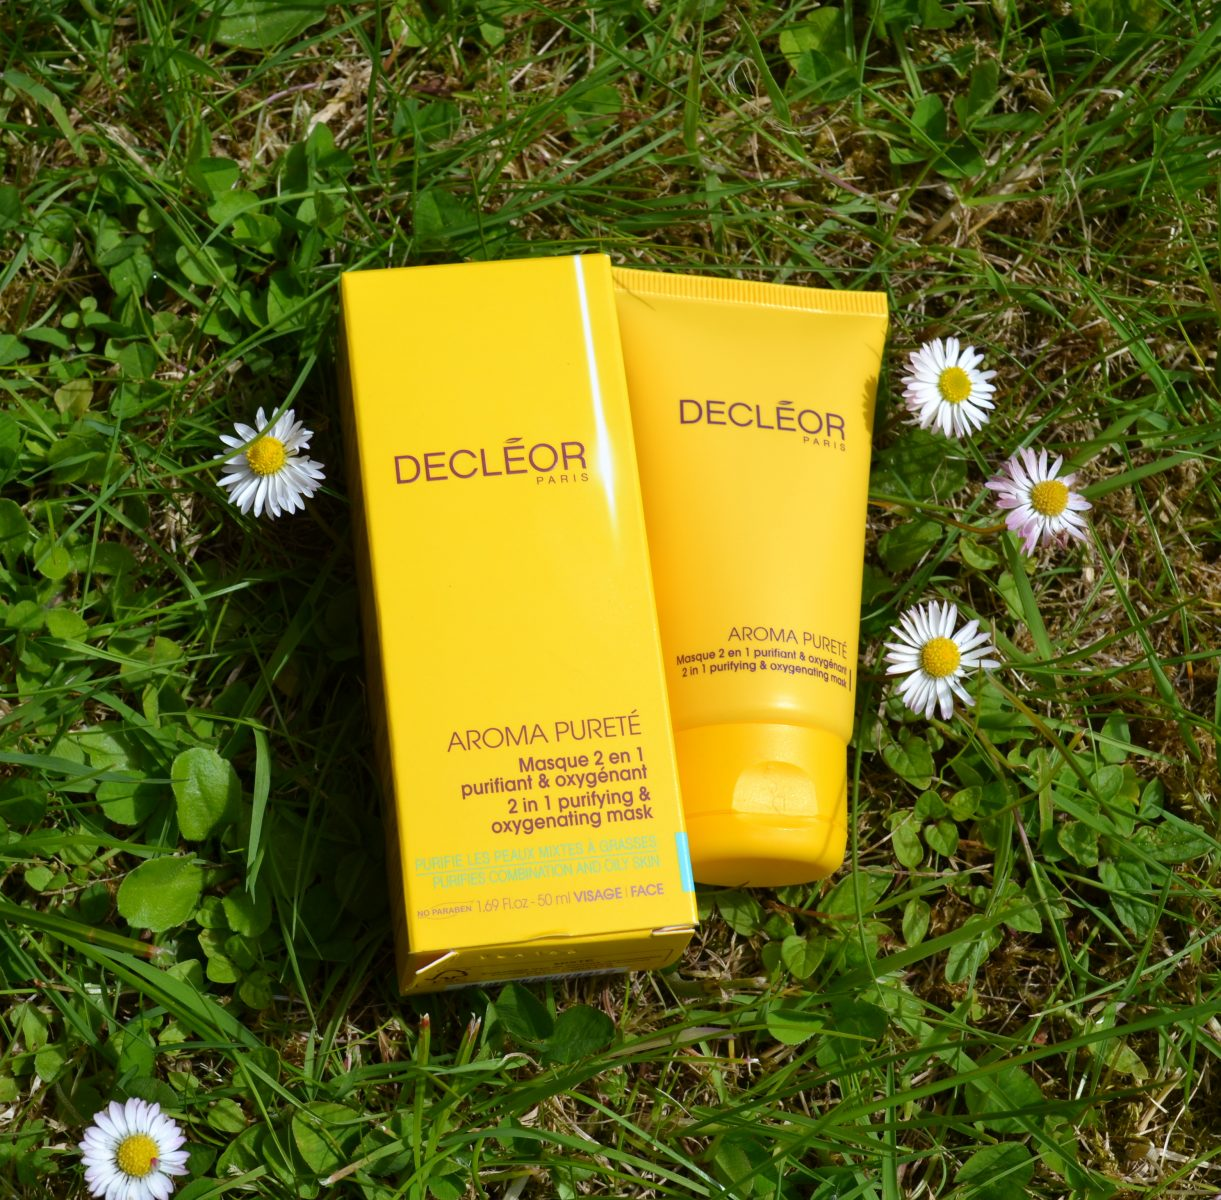 Decléor Aroma Purete 2 in 1 Purifying & Oxygenating Mask